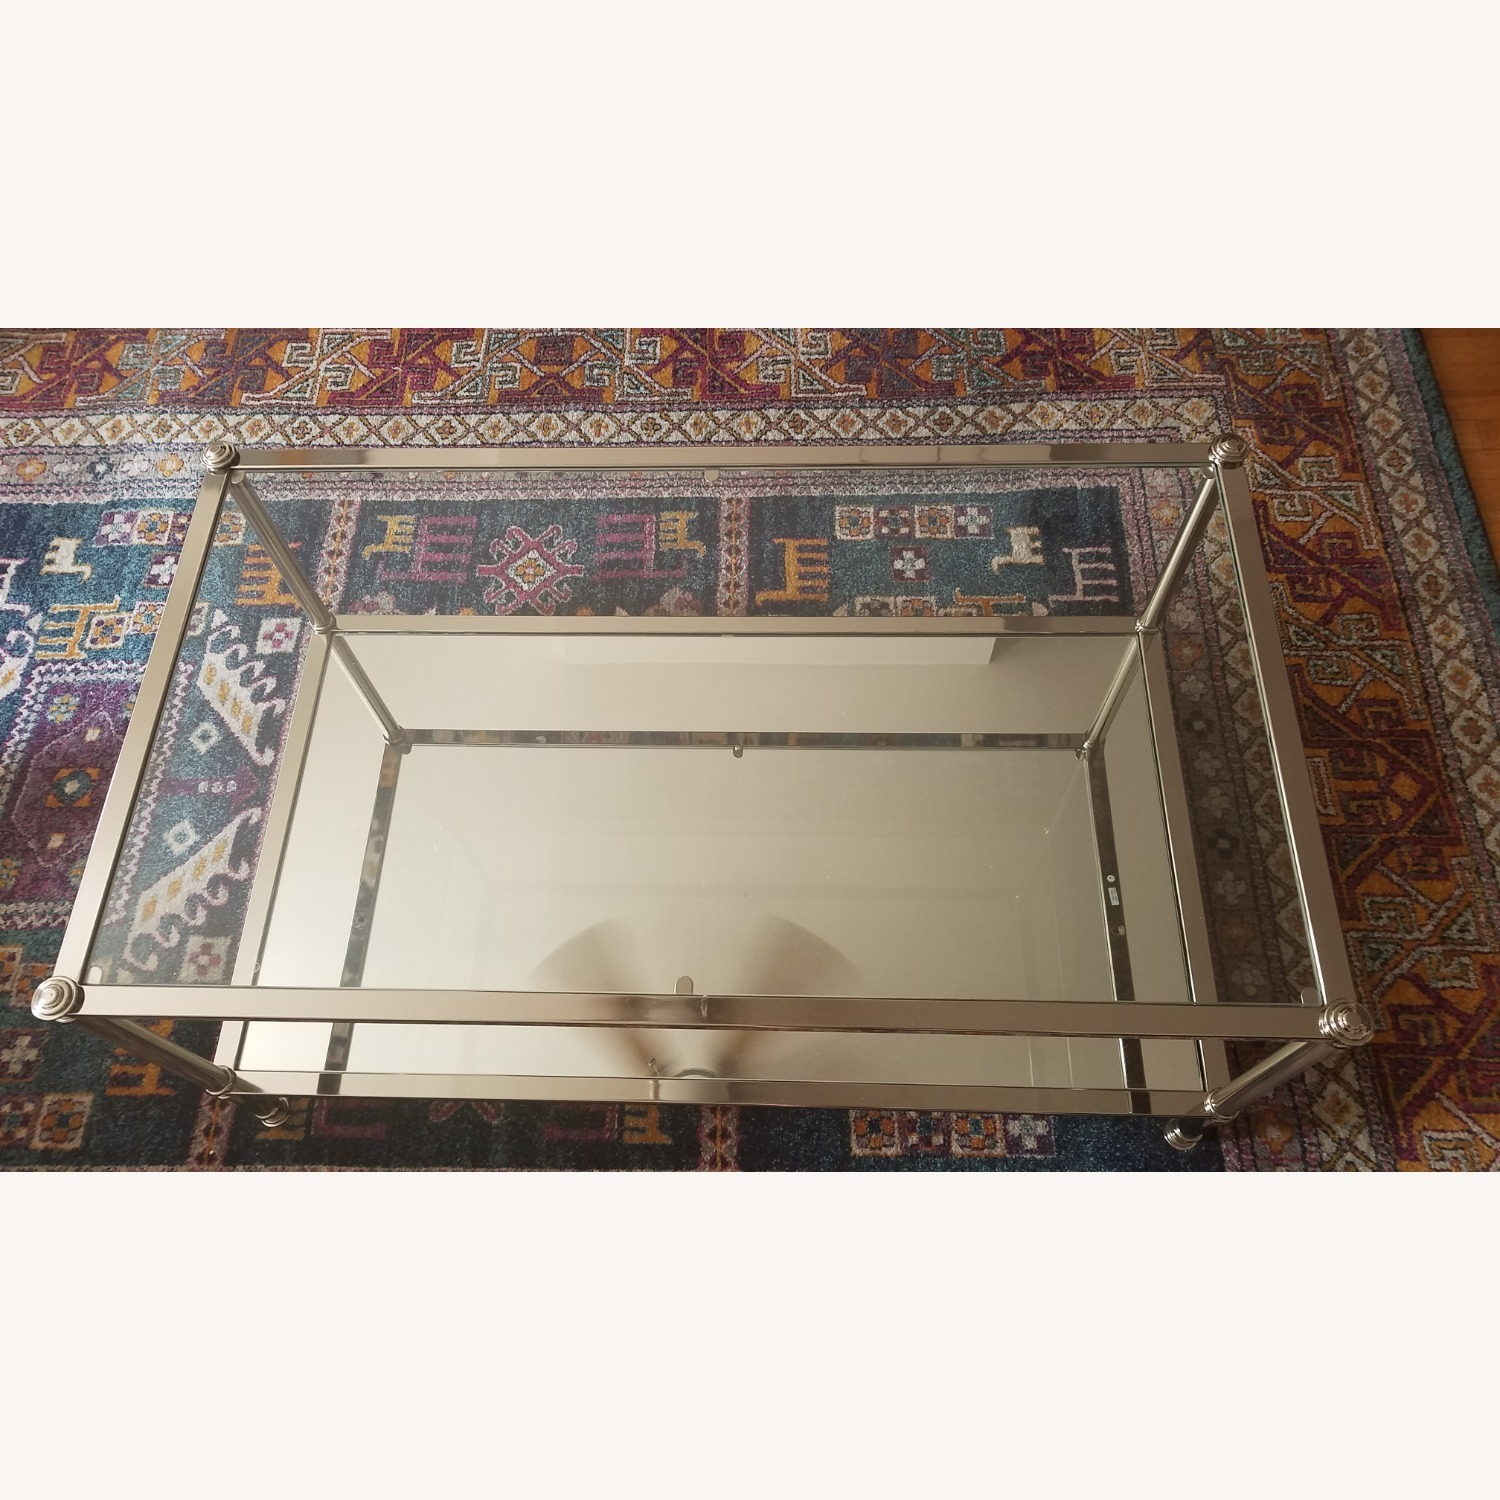 Wayfair Atticus Glass and Silver Coffee Table - image-1